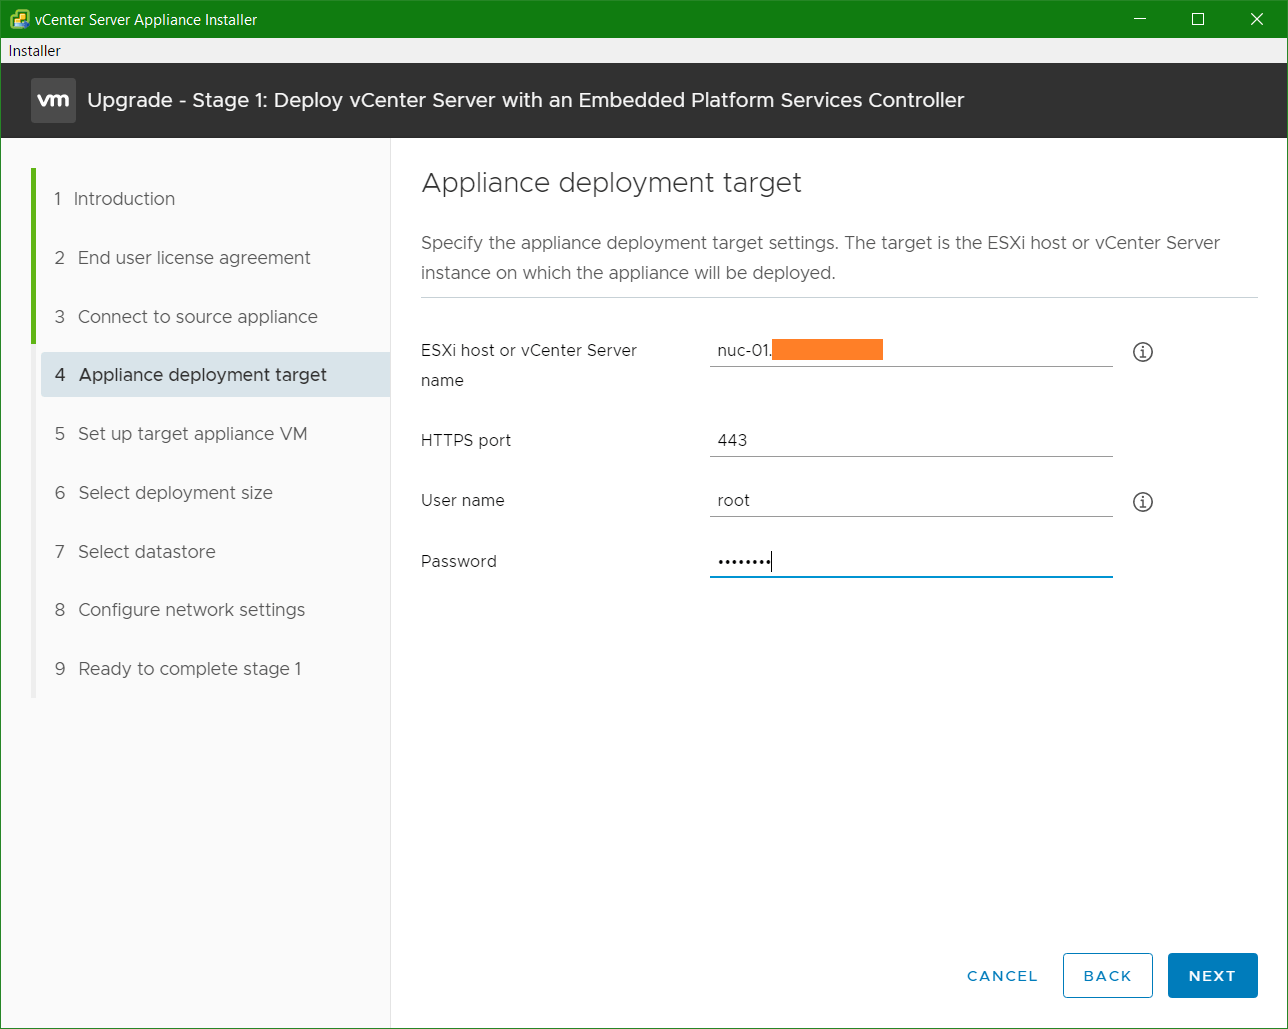 domalab.com VCSA upgrade stage 1 appliance deployment target